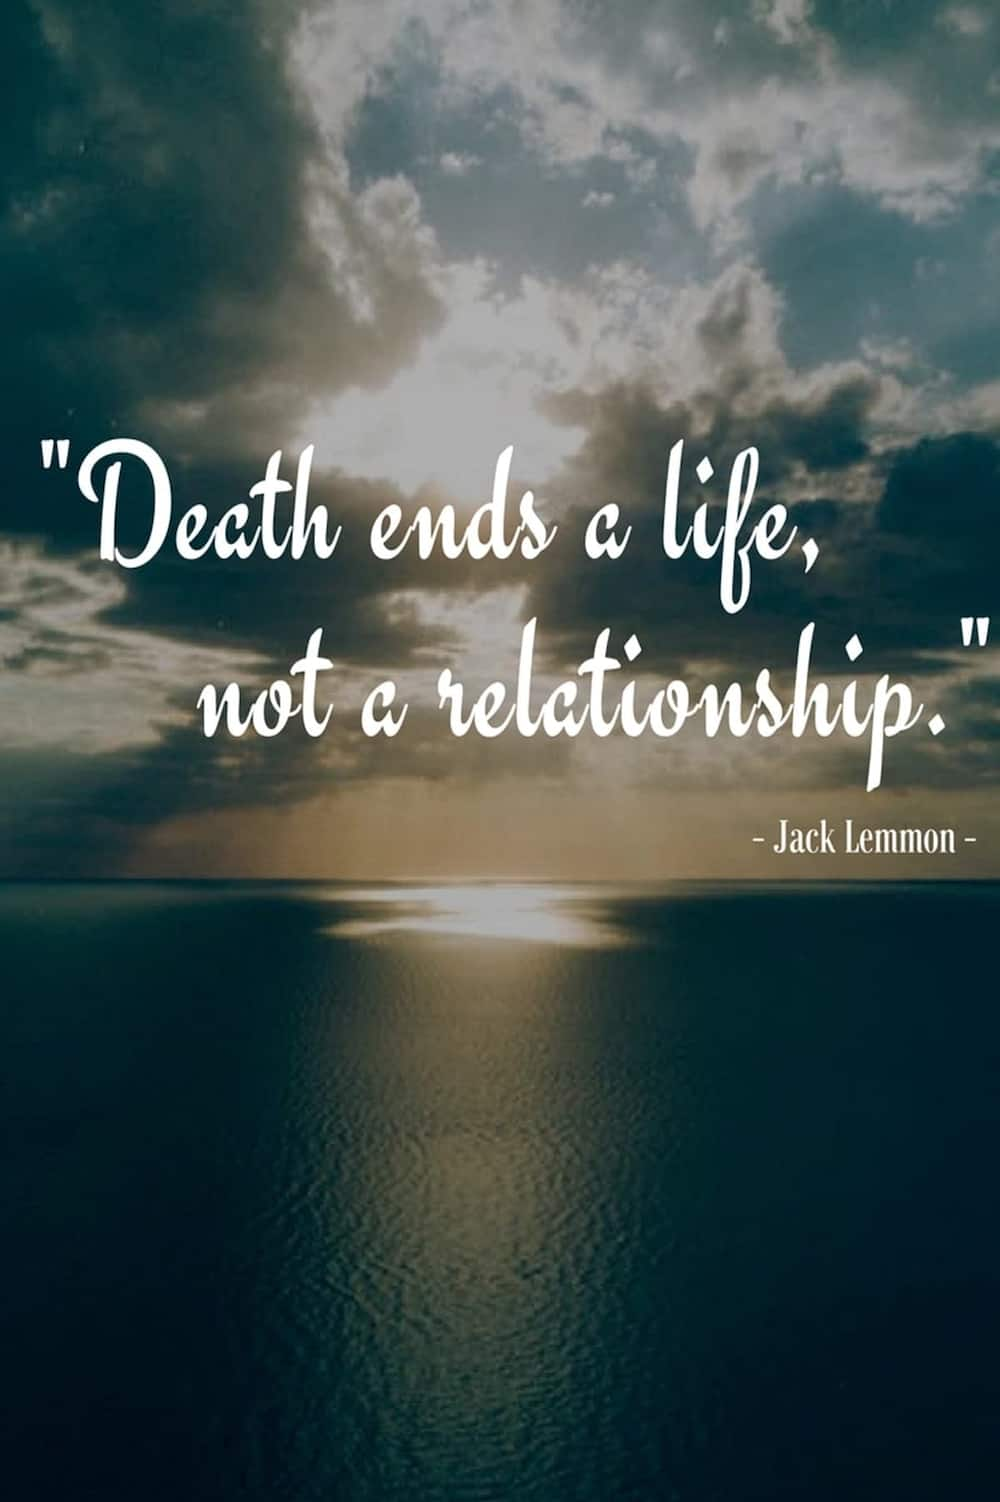 Quotes On Loss: Sad Quotes About Death Of A Loved One Tuko.co.ke